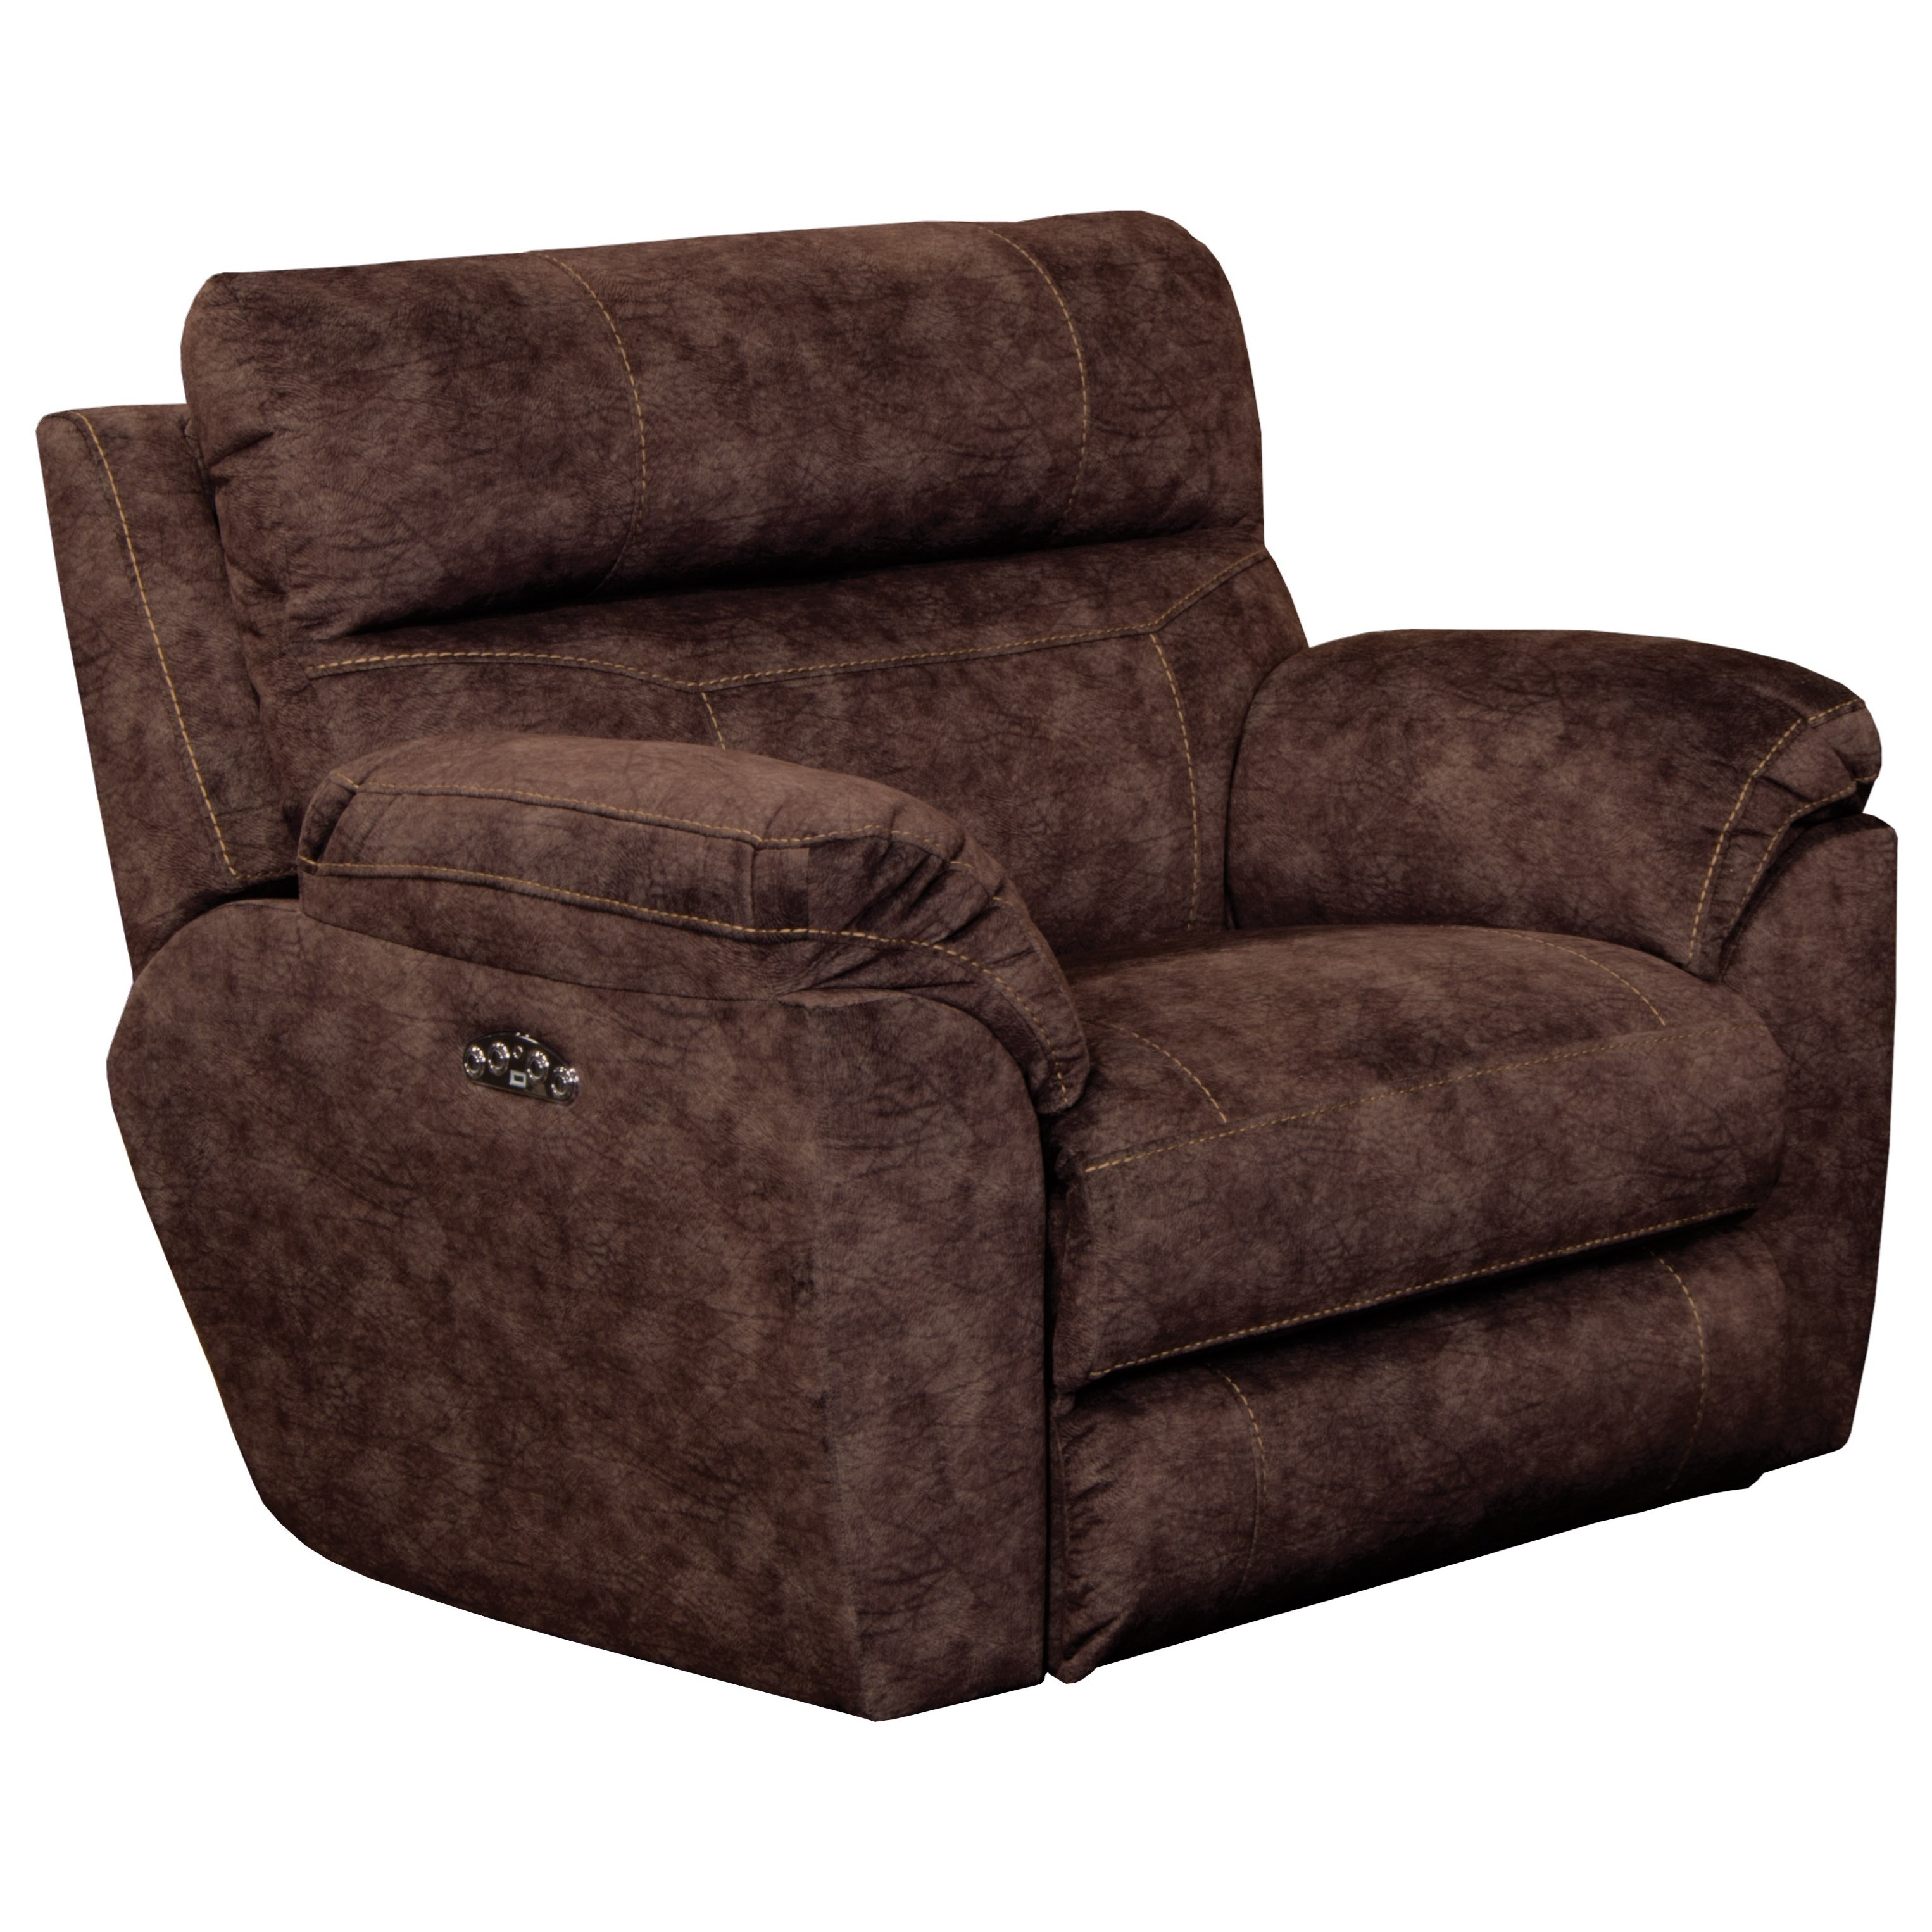 Sedona Power Lay Flat Recliner by Catnapper at Northeast Factory Direct